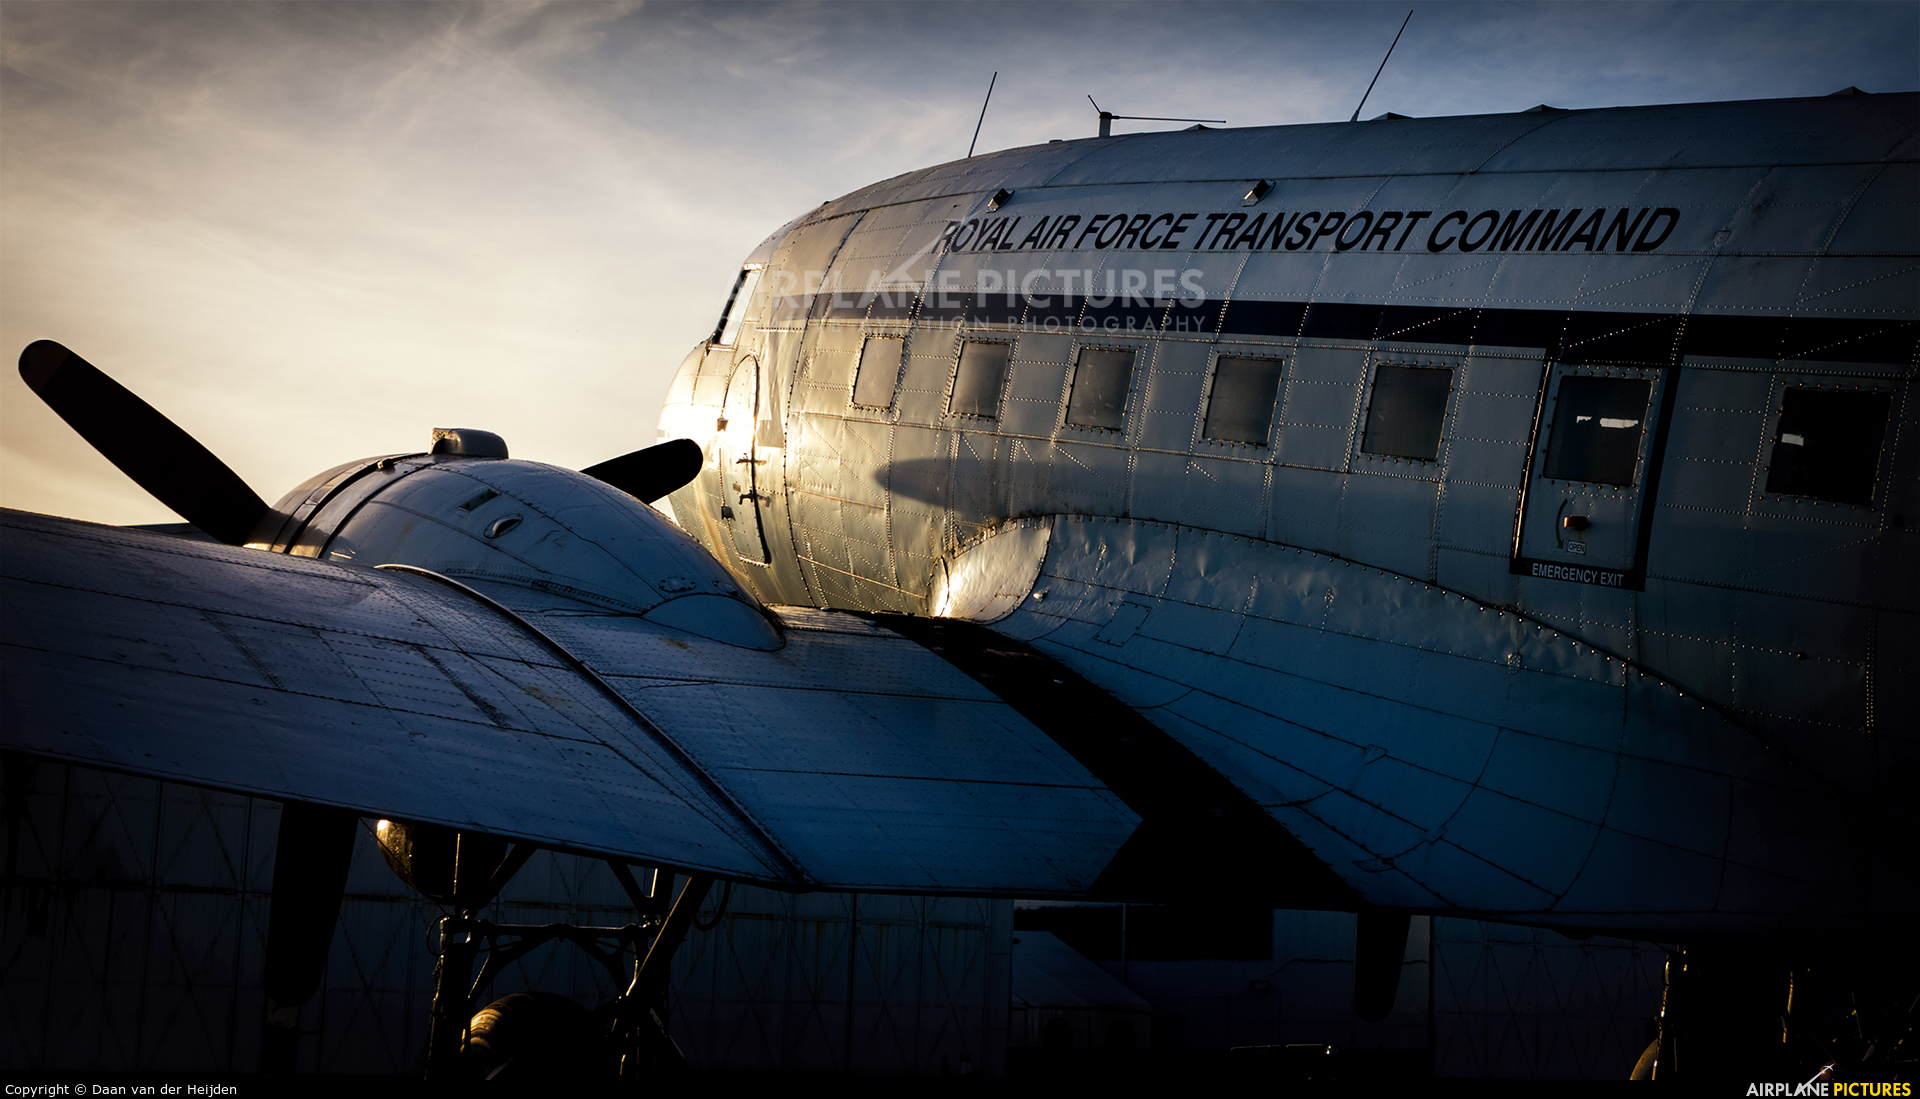 Royal Air Force Transport Command - aircraft at Coventry